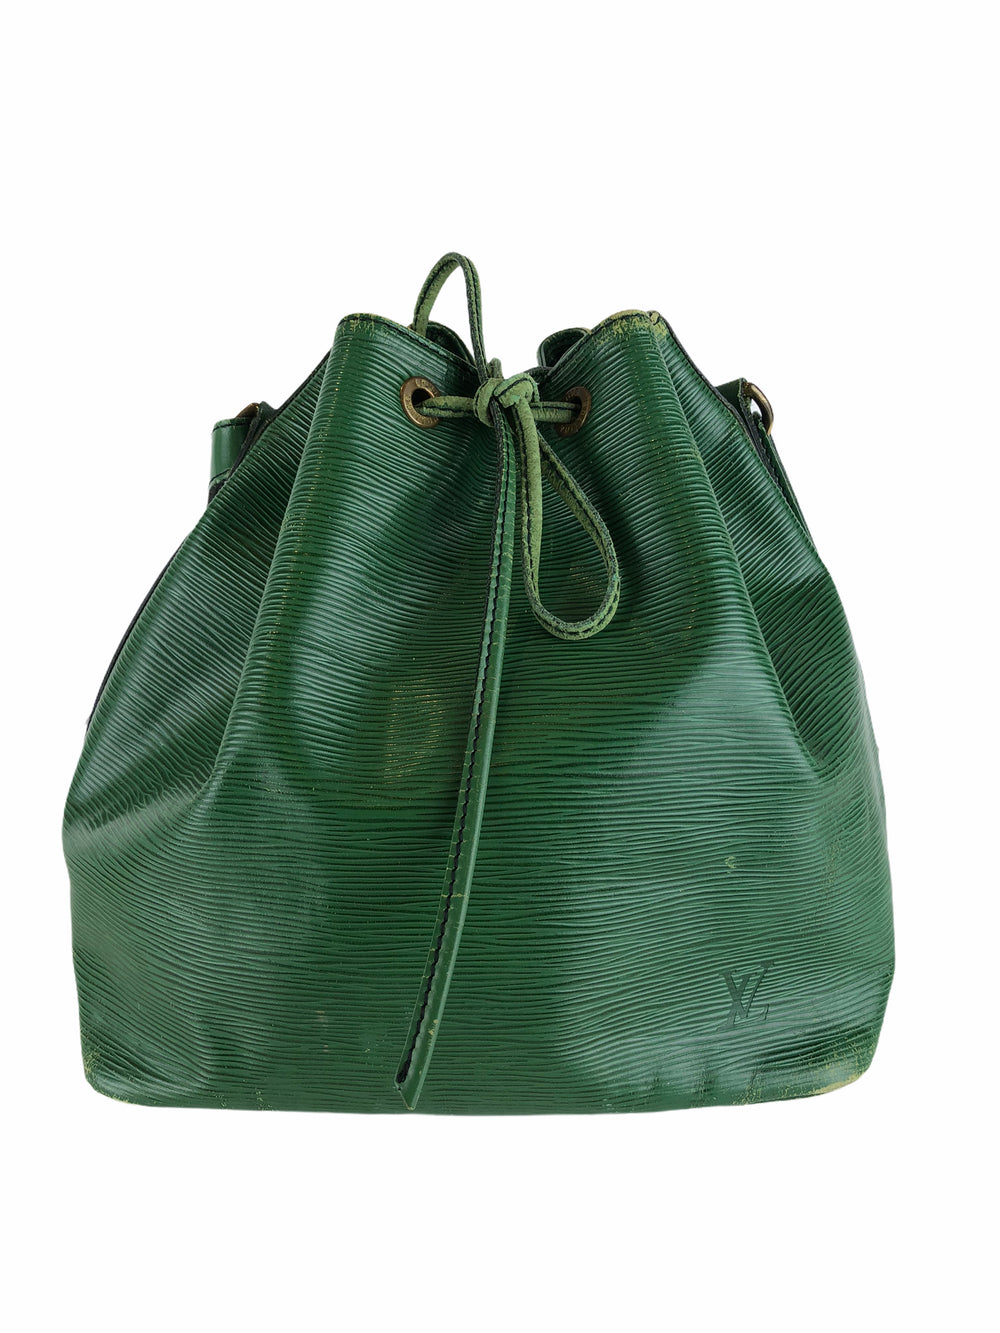 Louis Vuitton Vintage Green Epi Leather Noe Bucket Bag